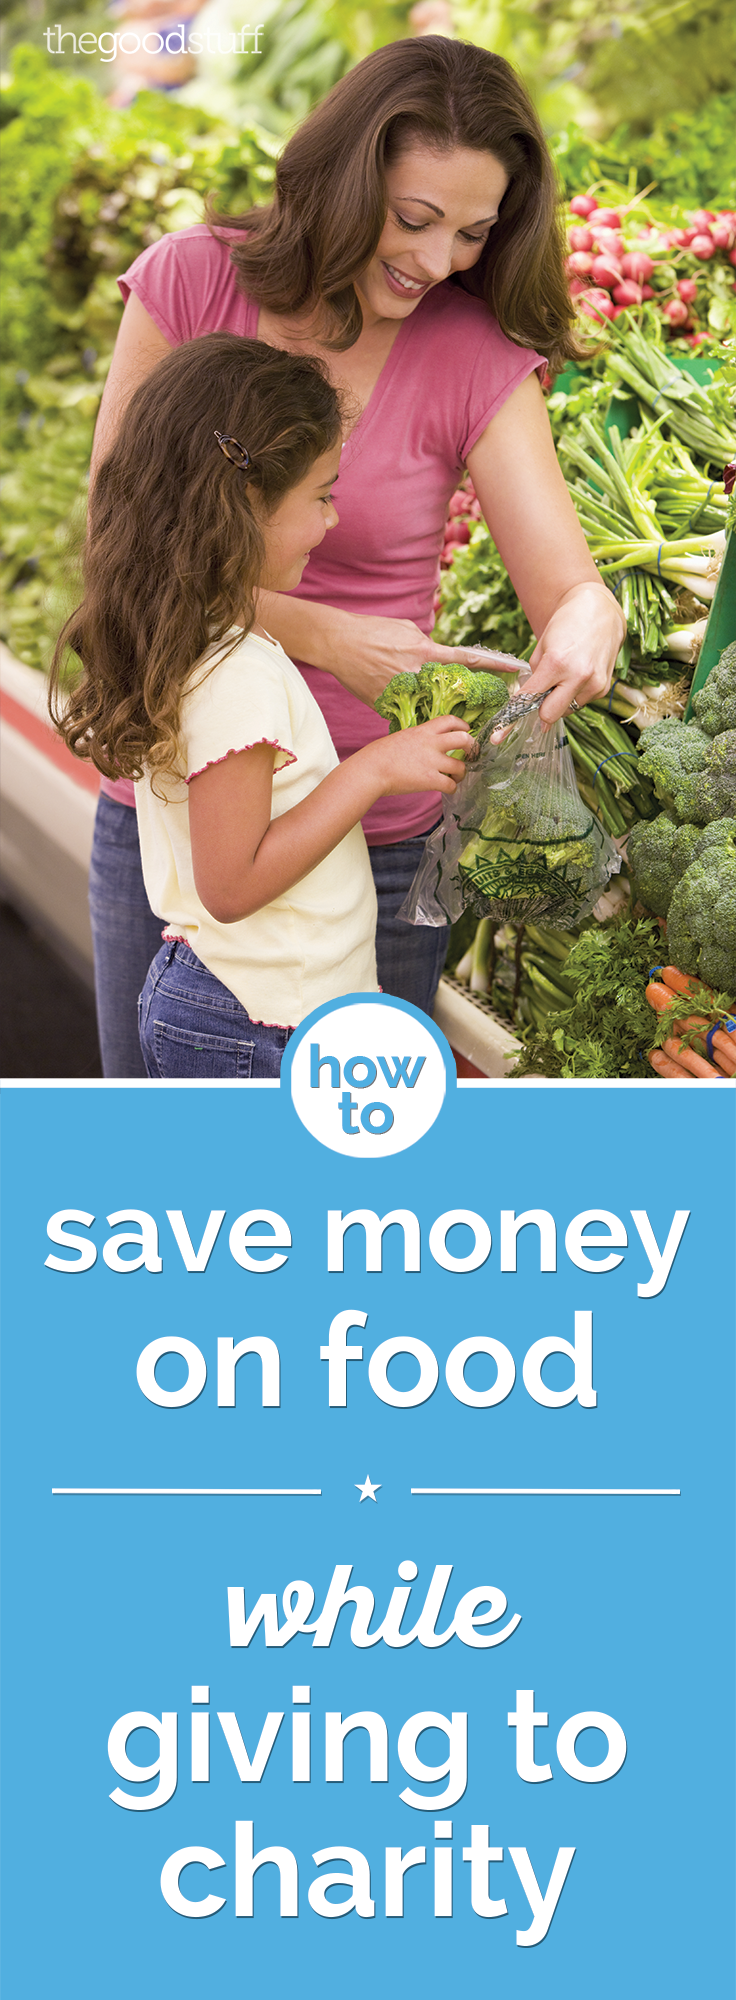 How to Save Money on Food While Giving to Charity | thegoodstuff